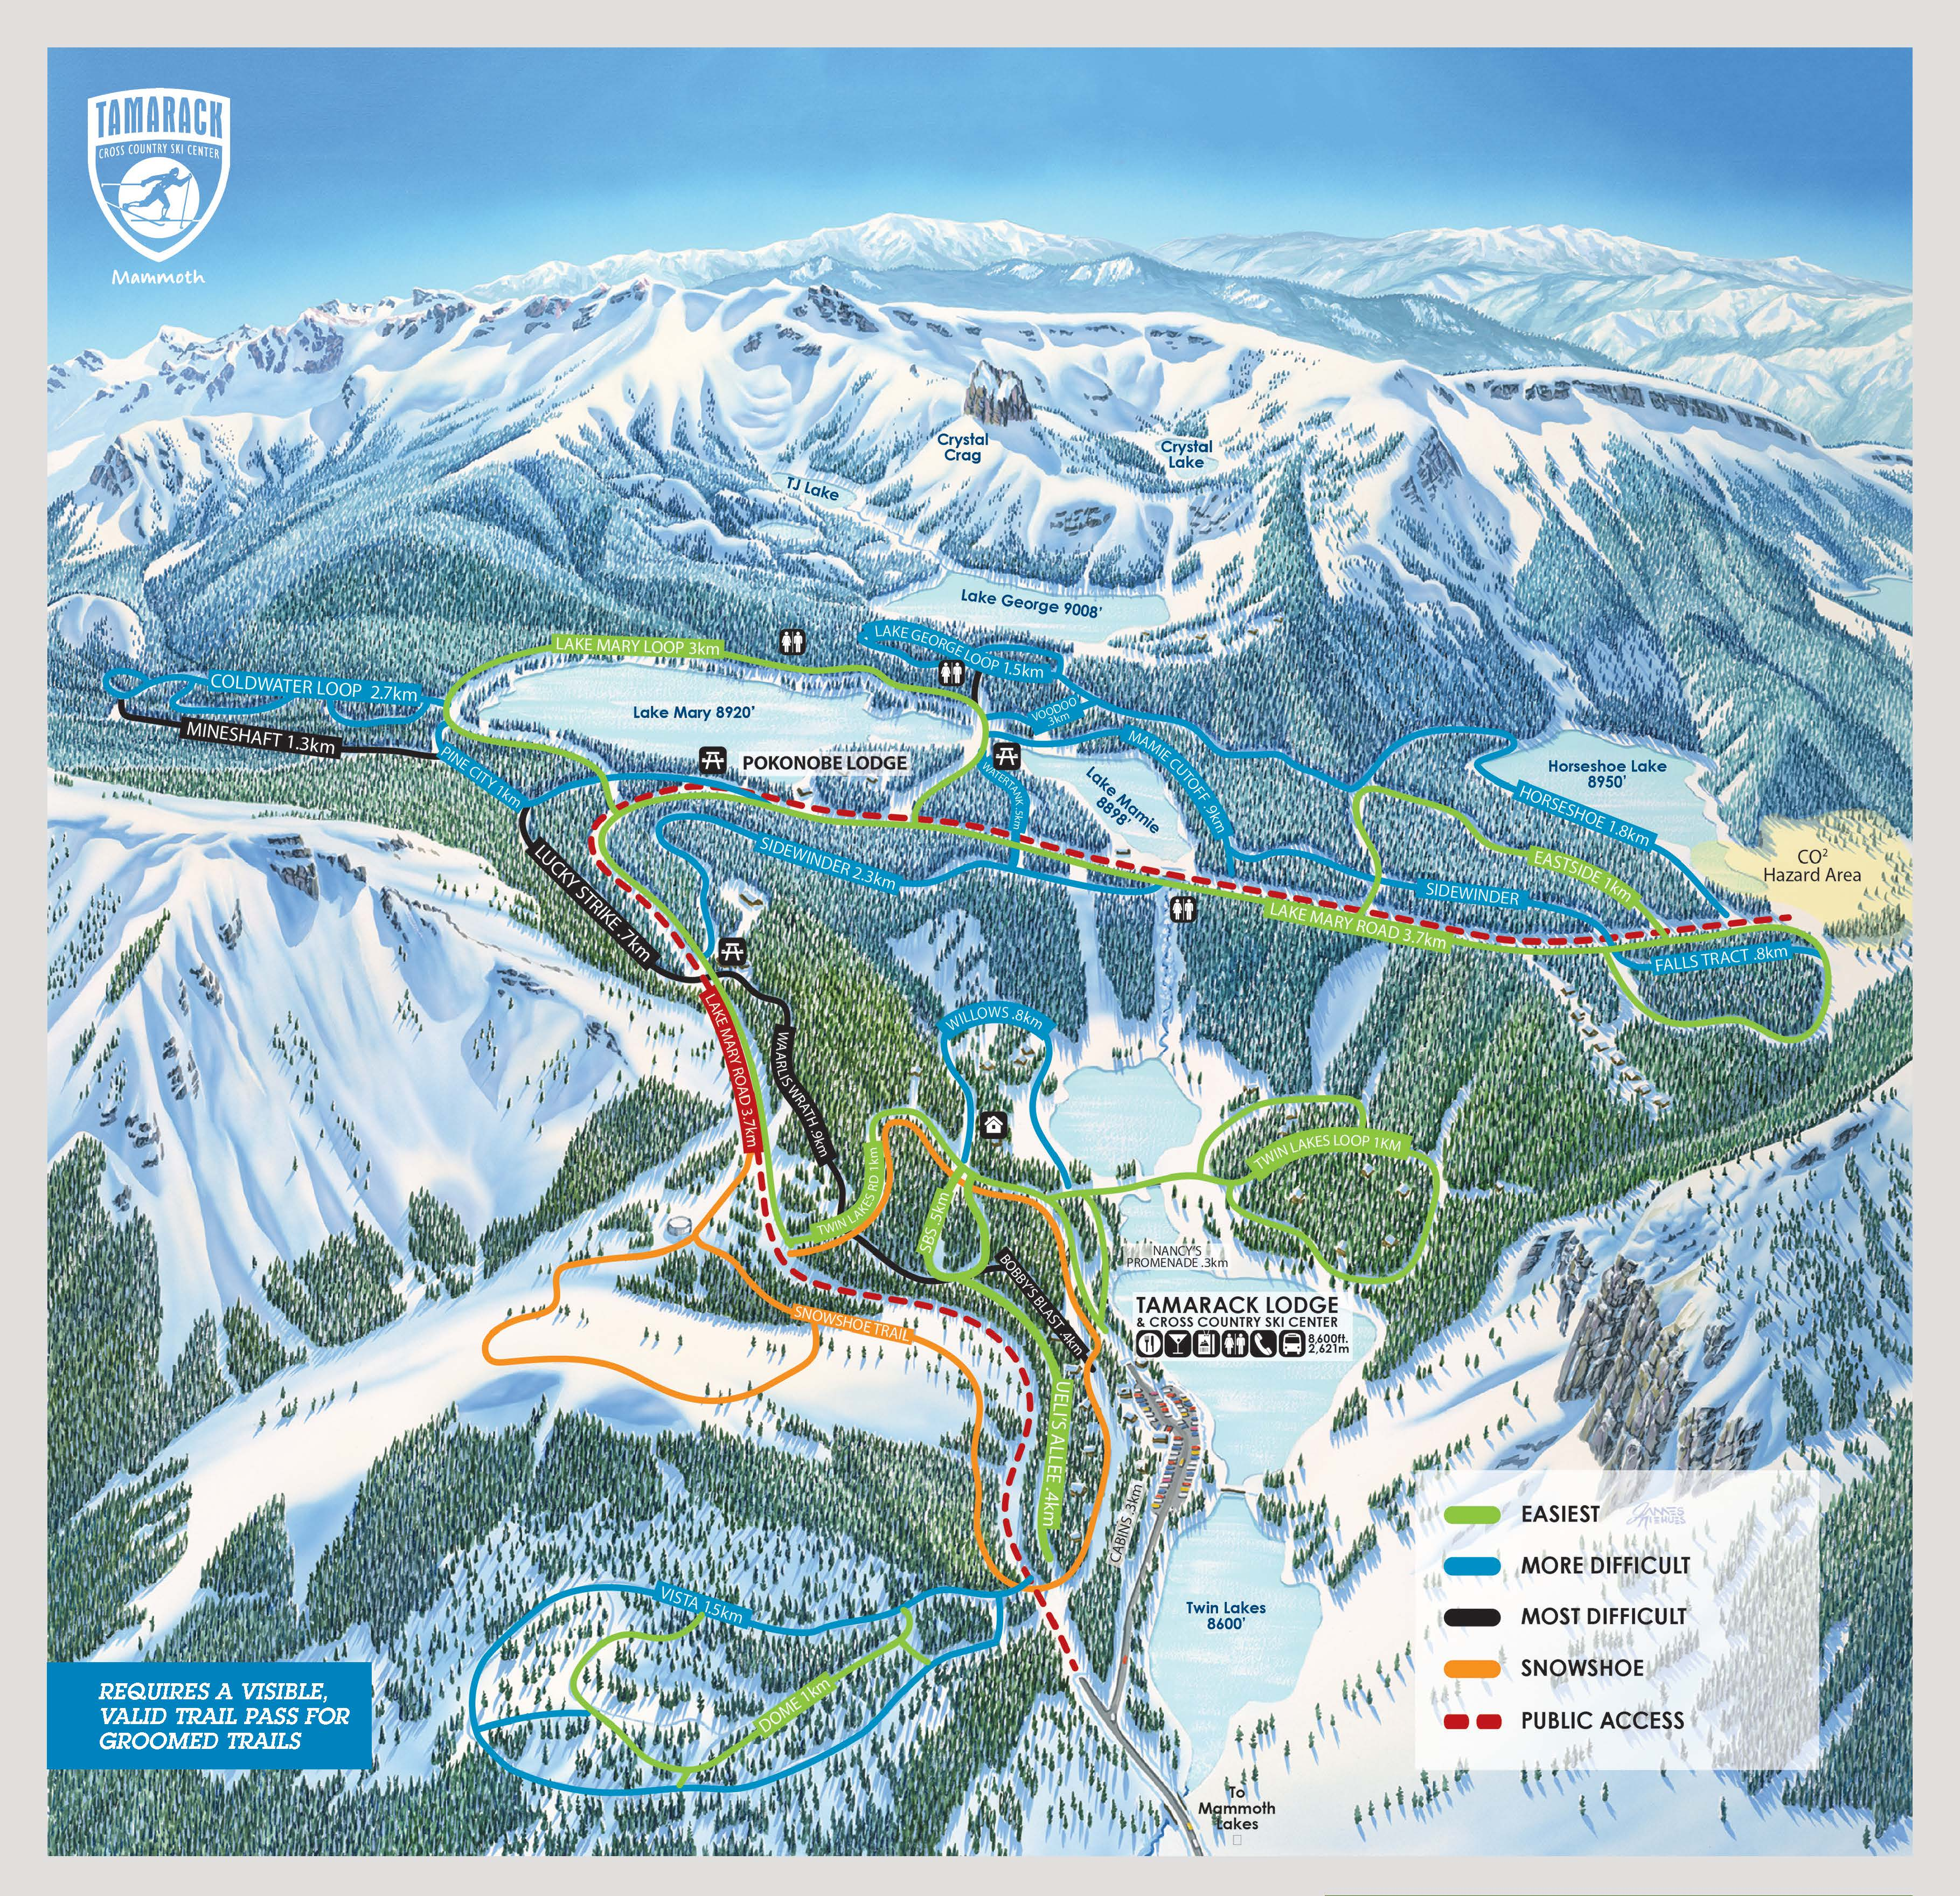 Mammoth Mountain Host Department - Mammoth mountain trail map